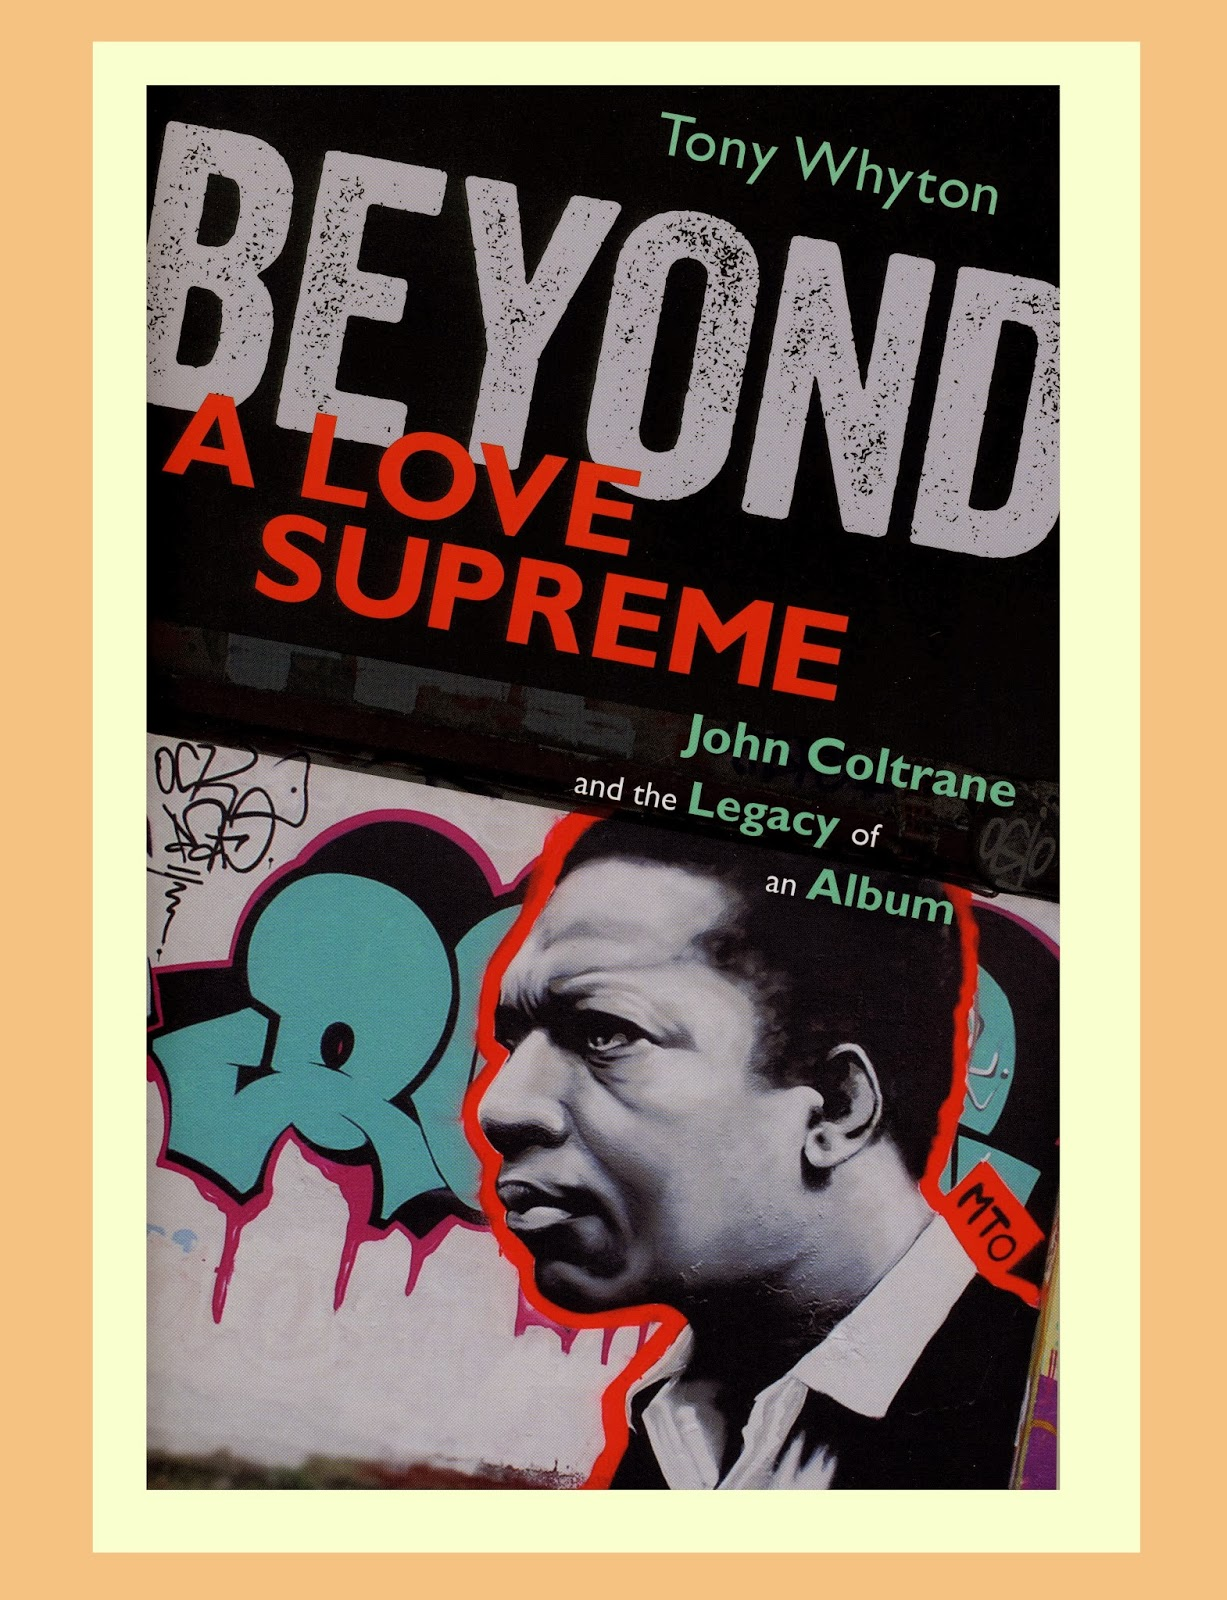 John Coltrane – Supremely Loved and Loathed